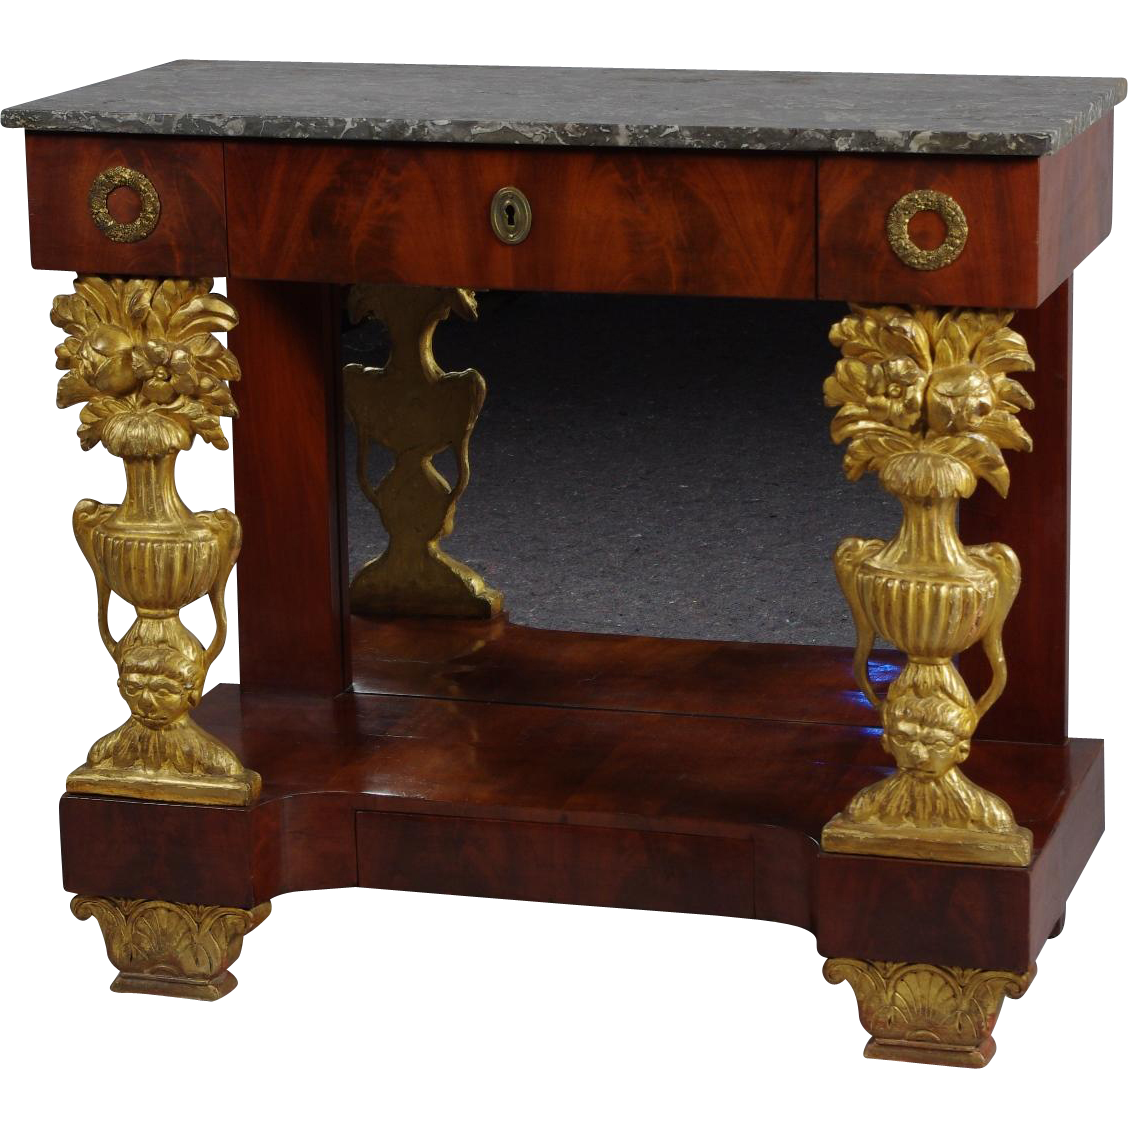 Italian empire console table from robert morrissey on rubylux geotapseo Choice Image